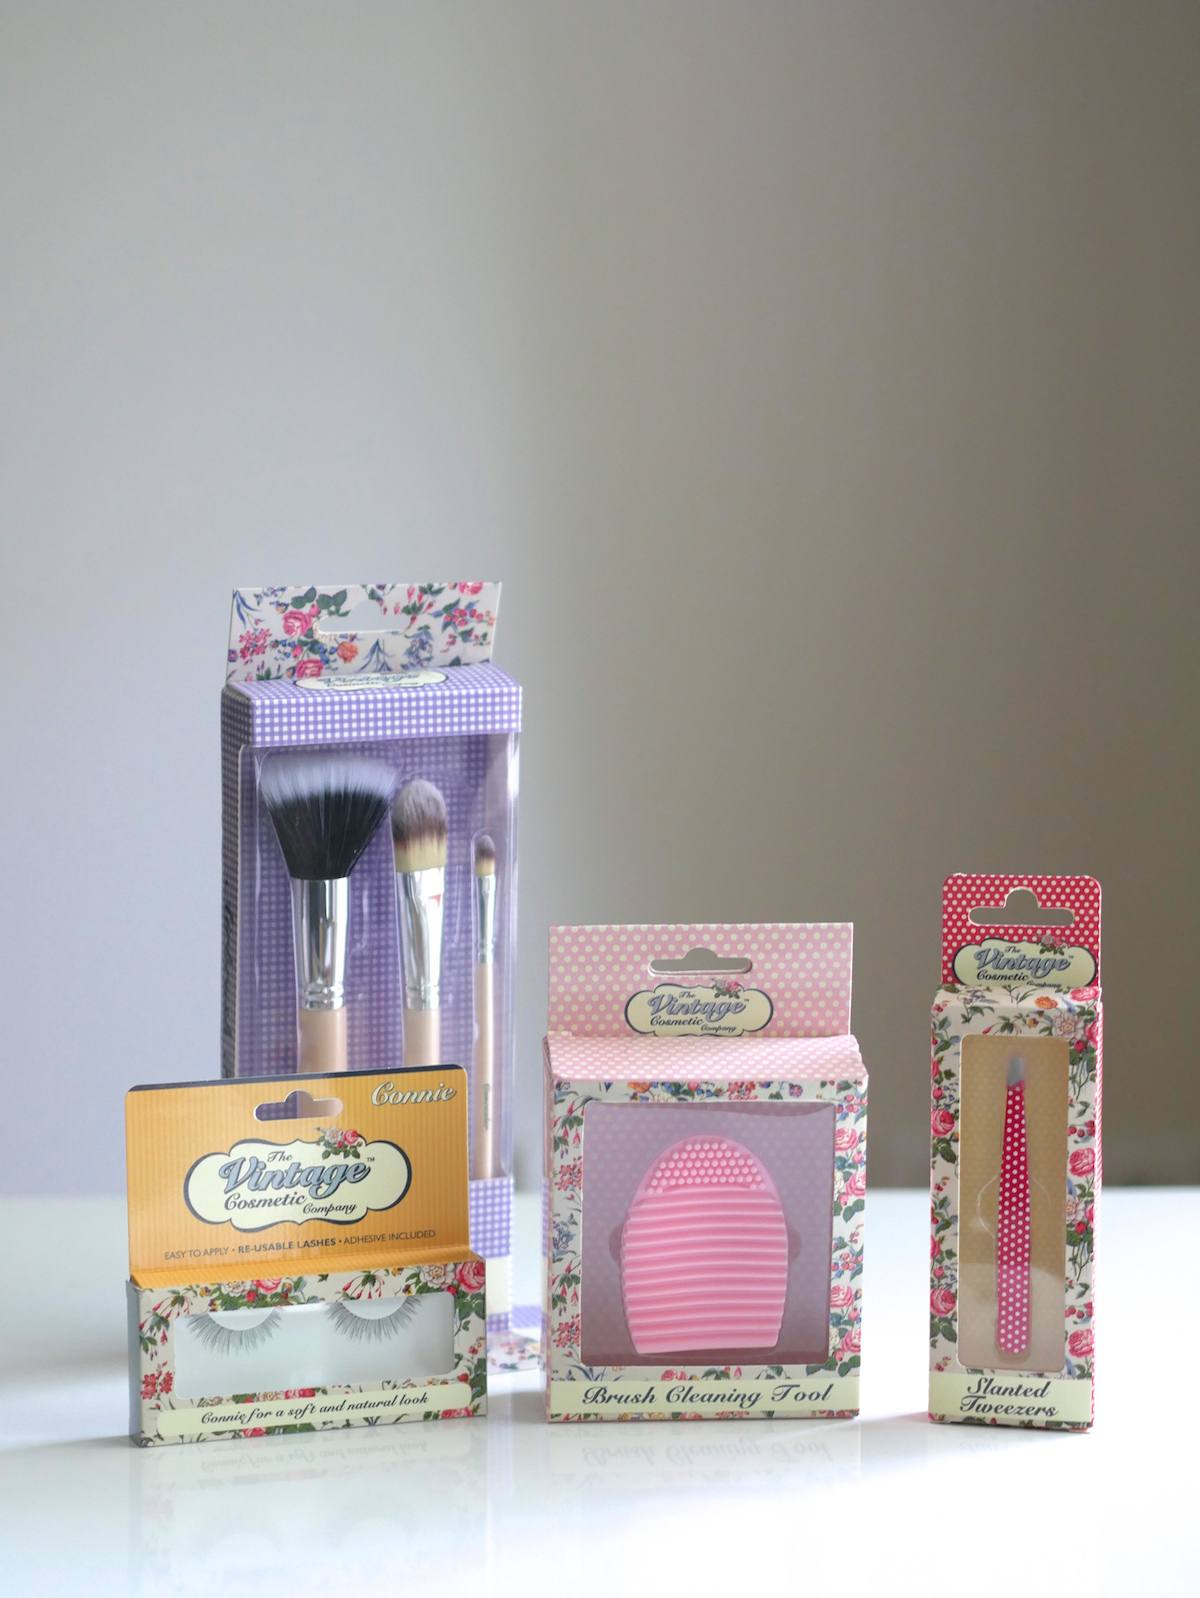 10 things 2 - The Vintage Cosmetic Company 2